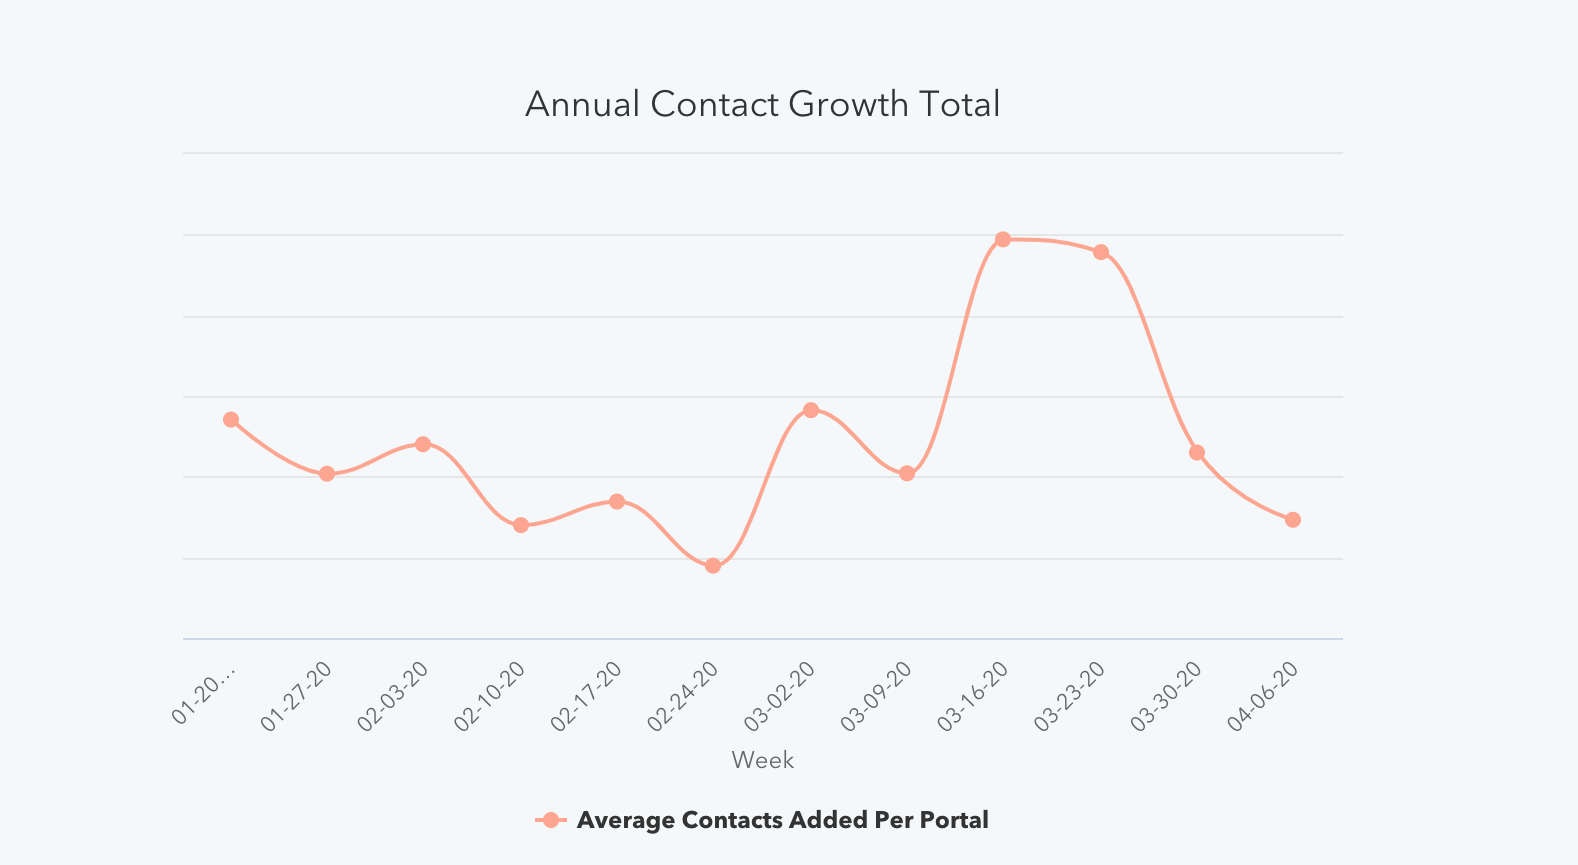 Annual Contact Growth Total